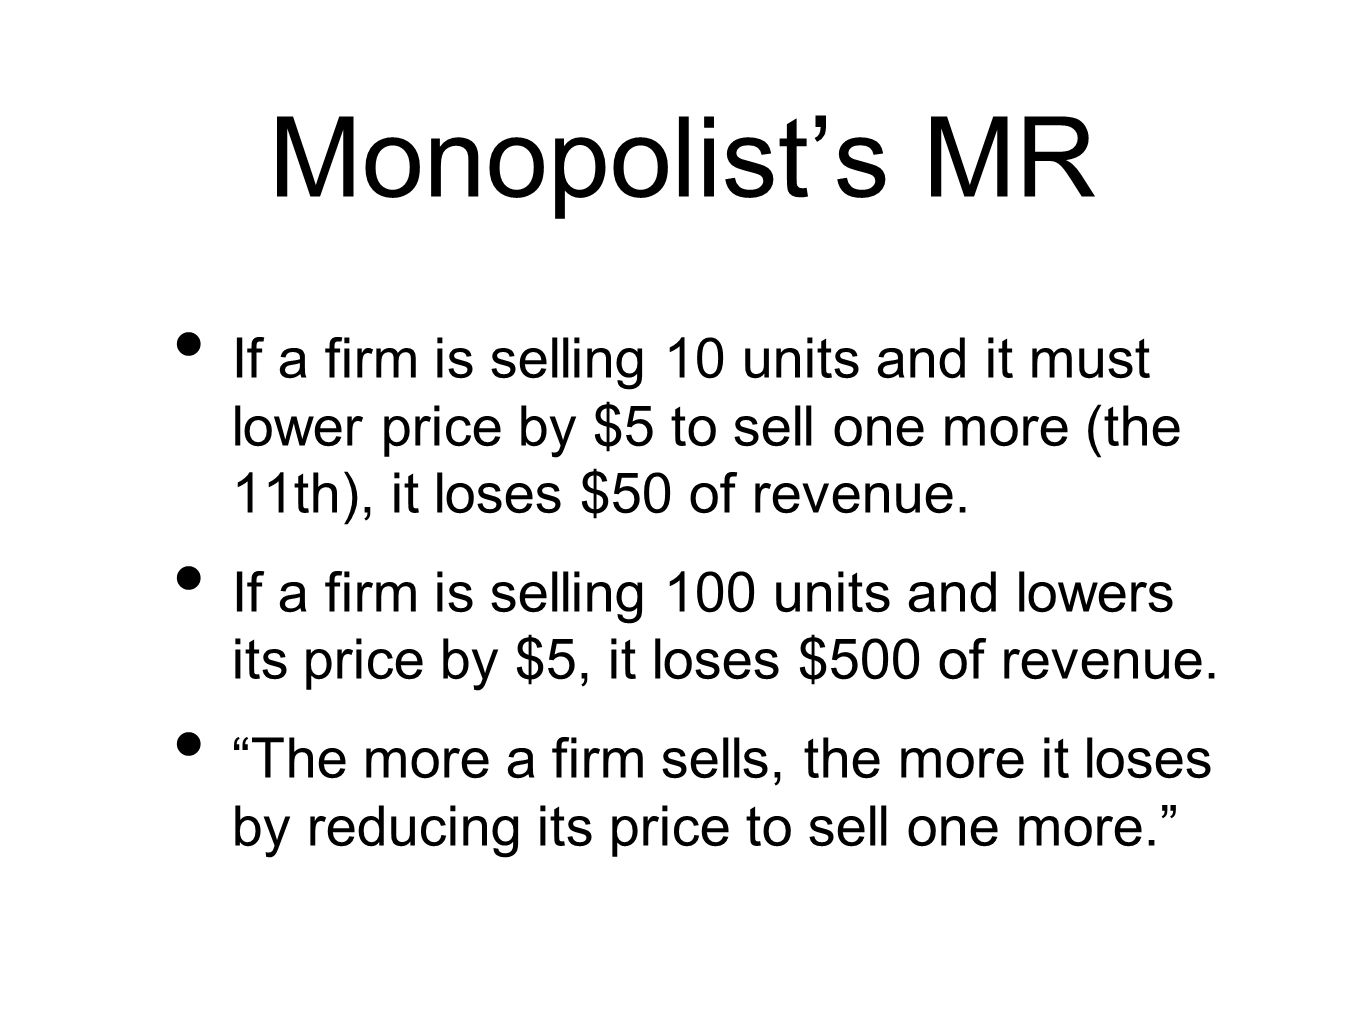 Monopolists MR If a firm is selling 10 units and it must lower price by $5 to sell one more (the 11th), it loses $50 of revenue.